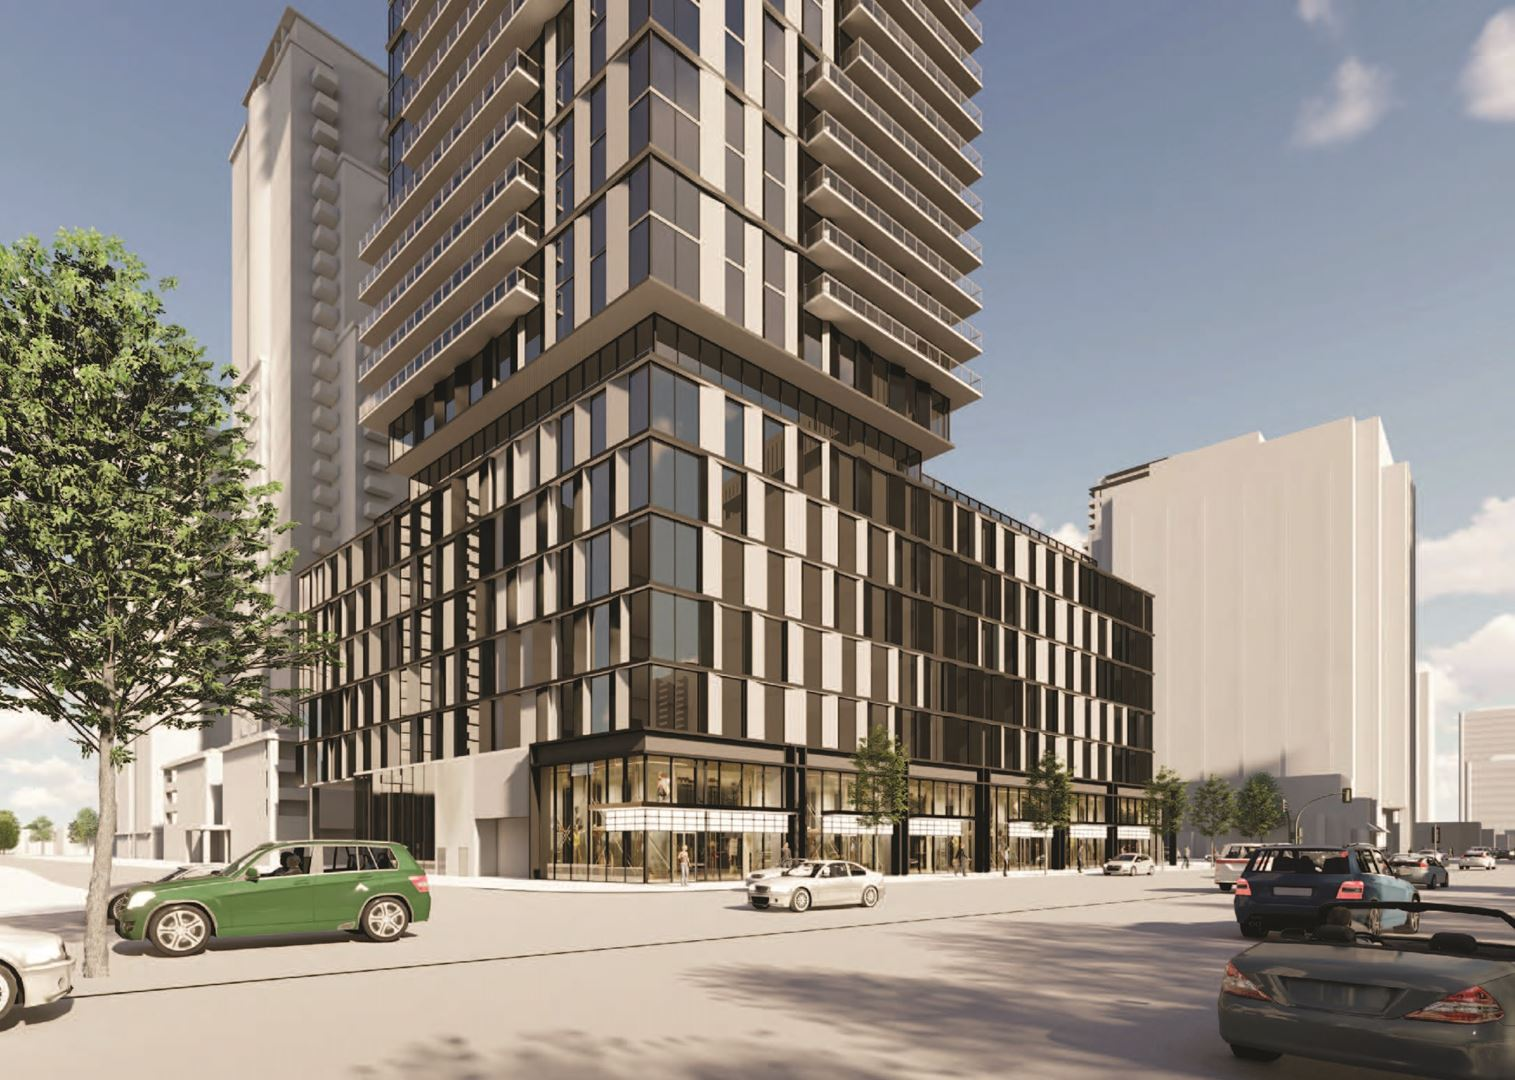 Exterior rendering of 5051 Yonge Street Condos lower area and streetview